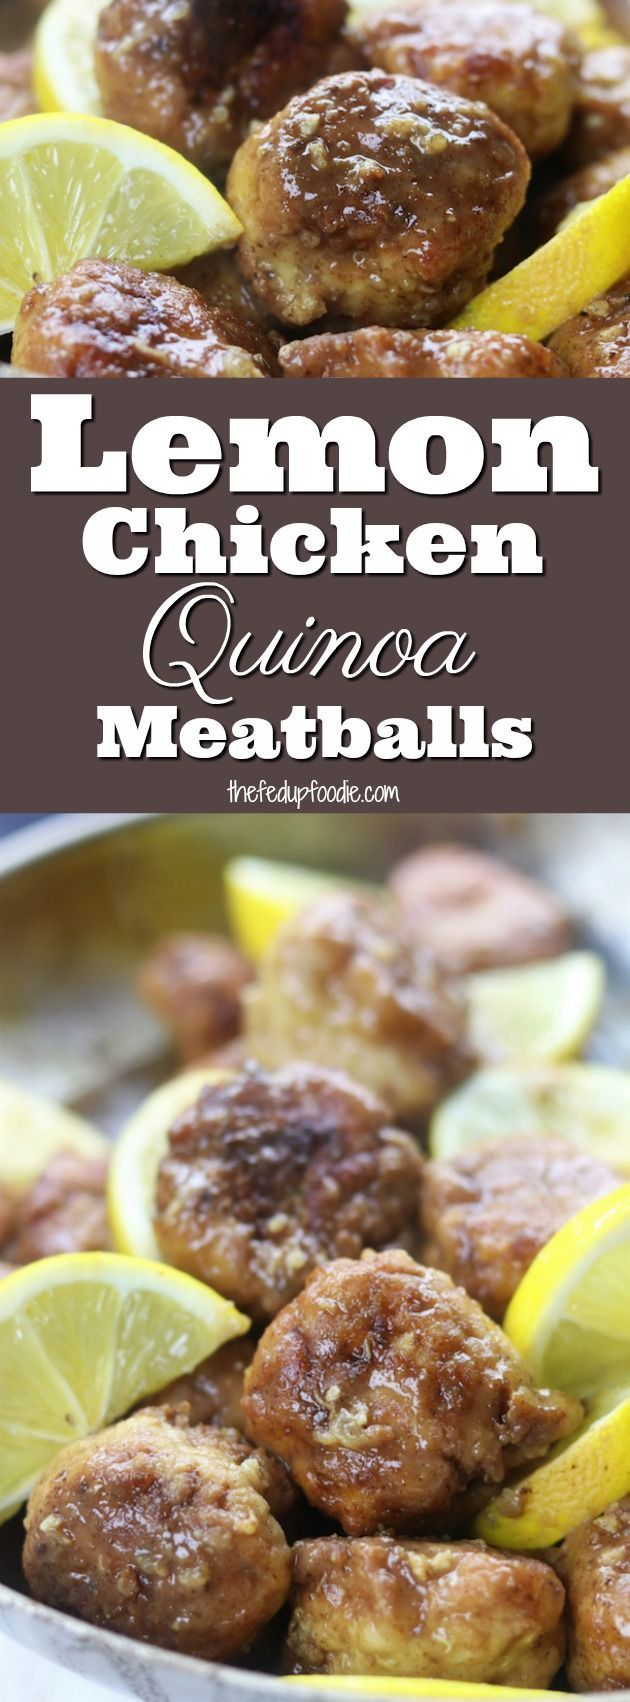 Lemon Chicken Quinoa Meatballs have tender and juicy chicken in a luscious lemon sauce that is perfect over brown rice.  Quick and healthy, this meal is crazy good and a favorite with lemon lovers. #meatballs #easydinner #chicken #lemon  https://www.thefedupfoodie.com